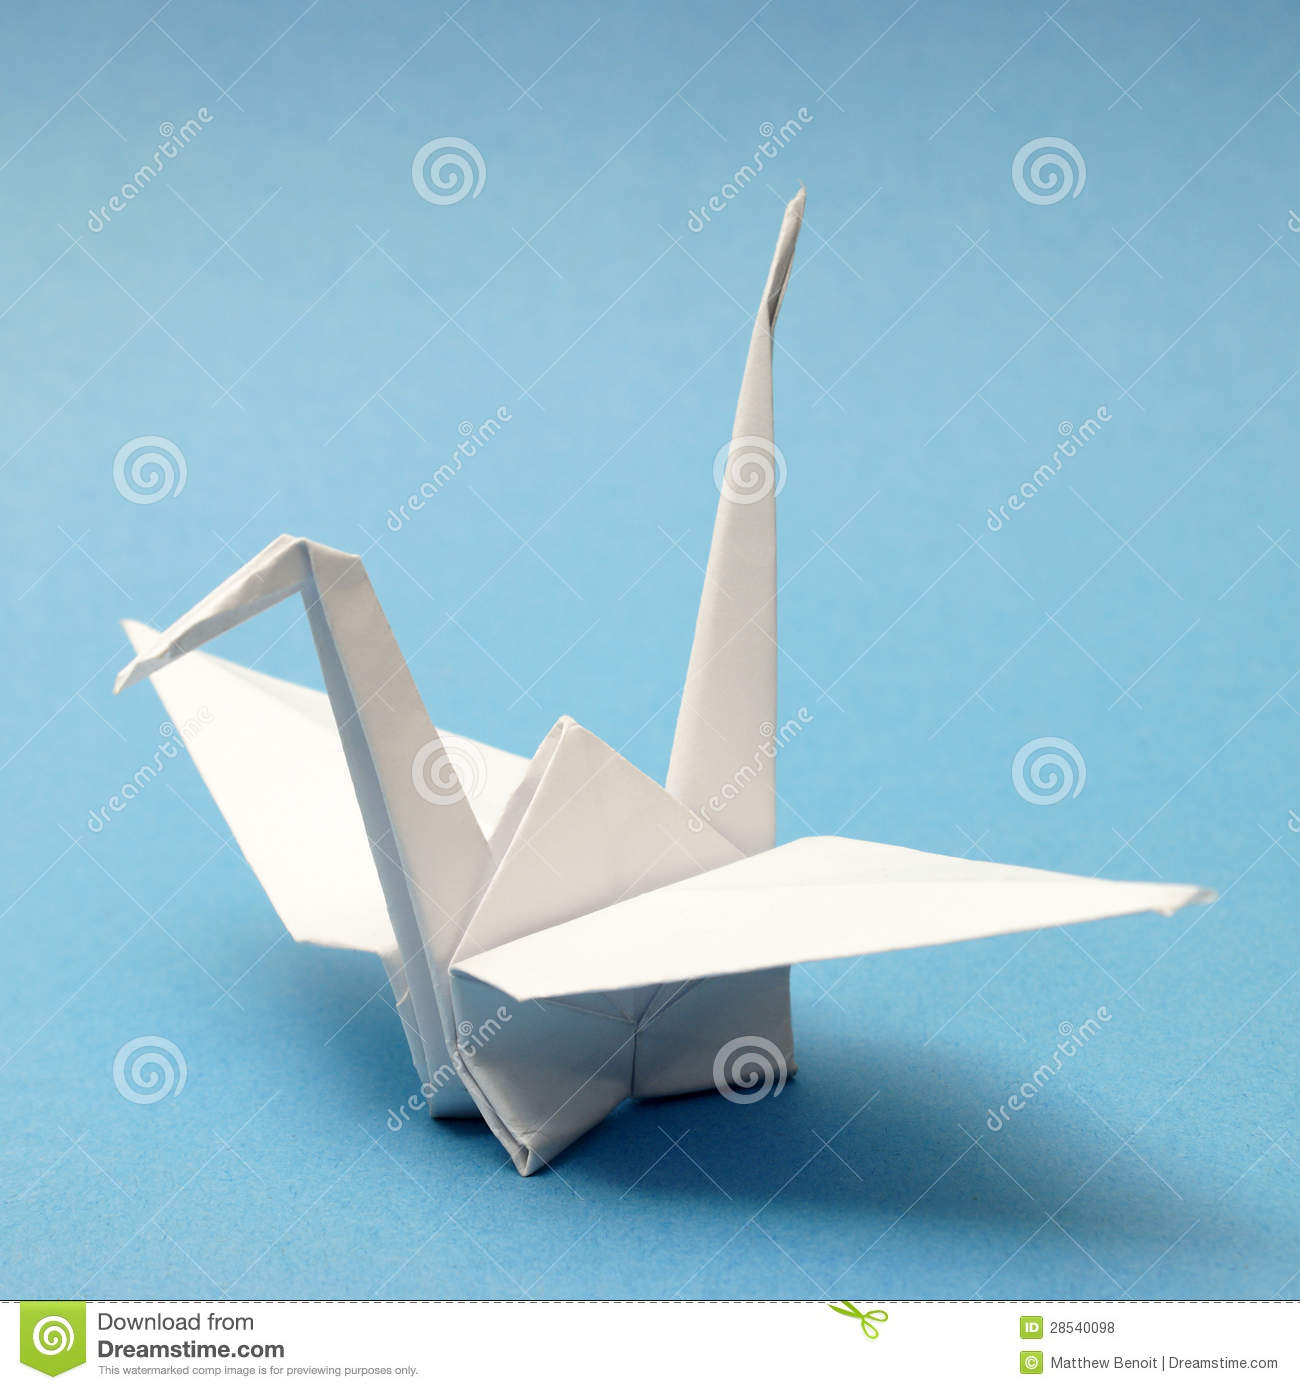 nicely folded origami swan over a blue tranquil background.